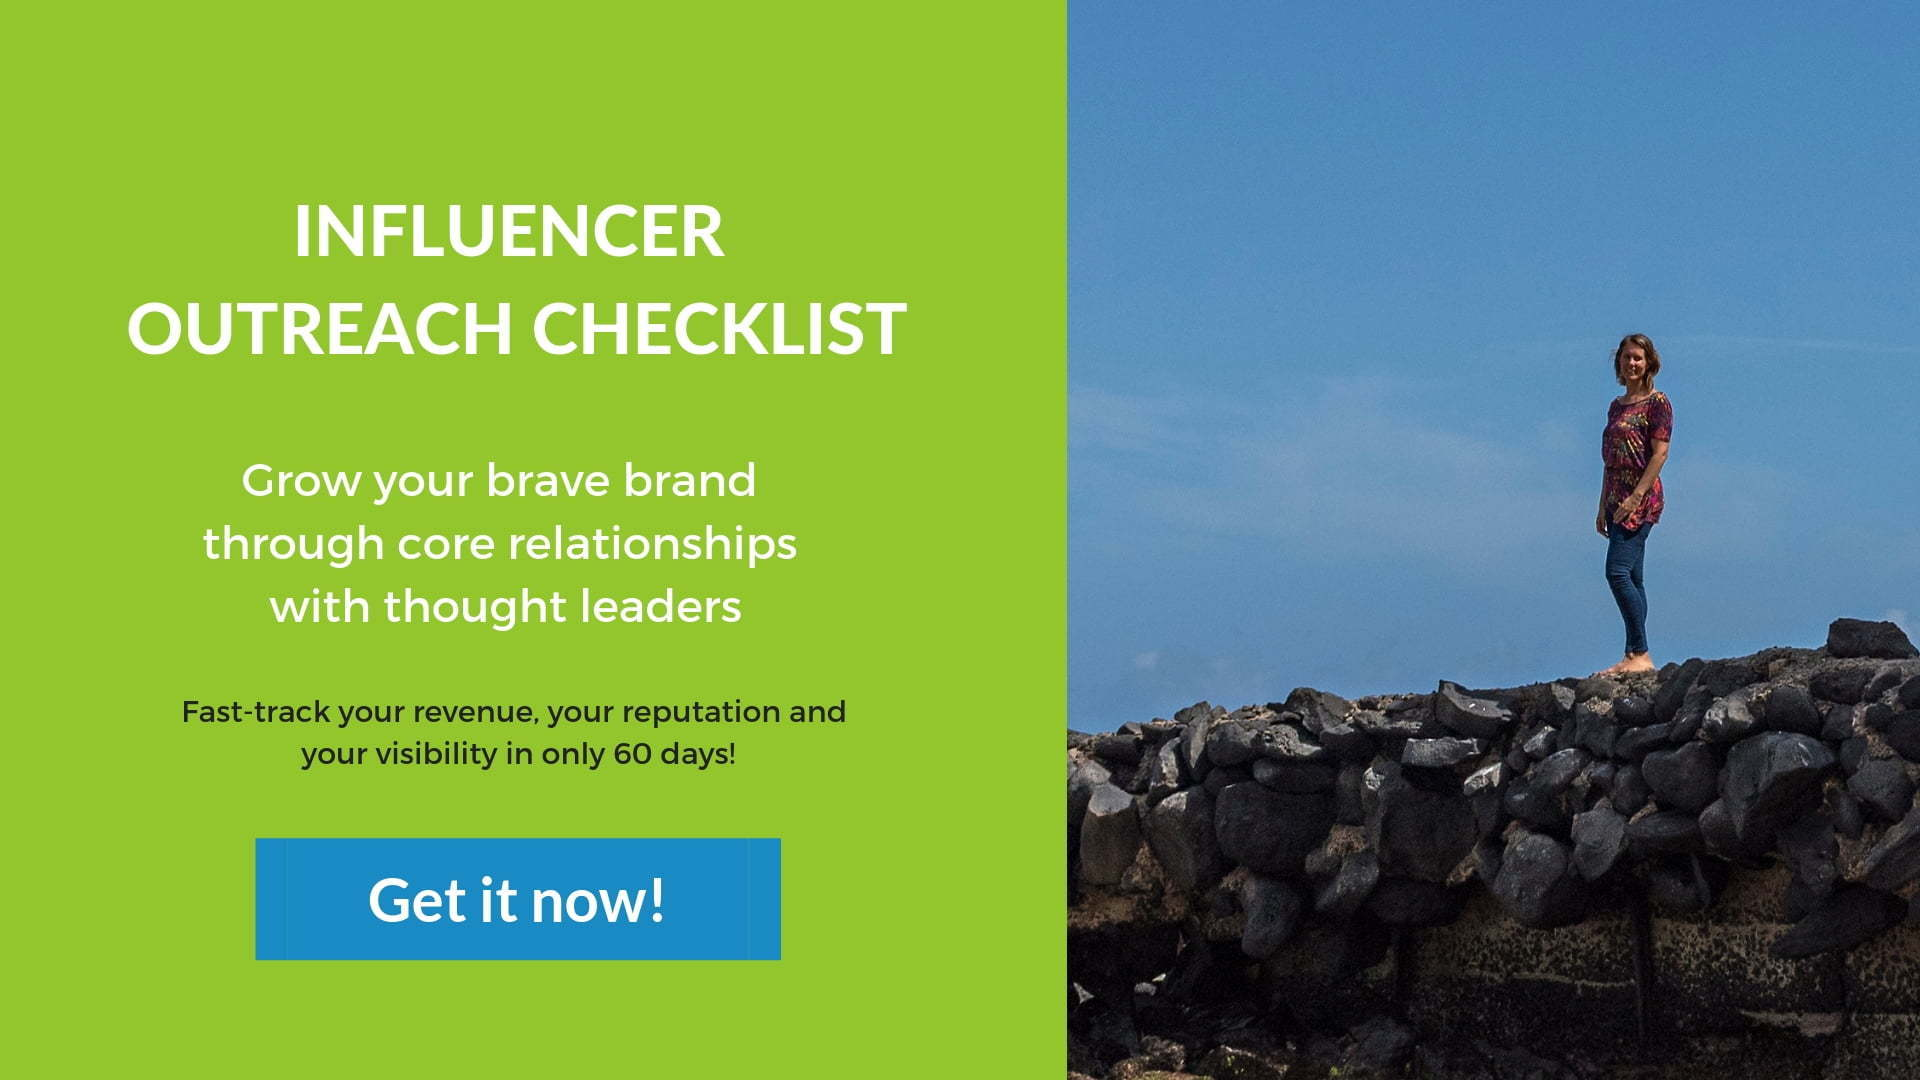 Influence outreach checklist banner